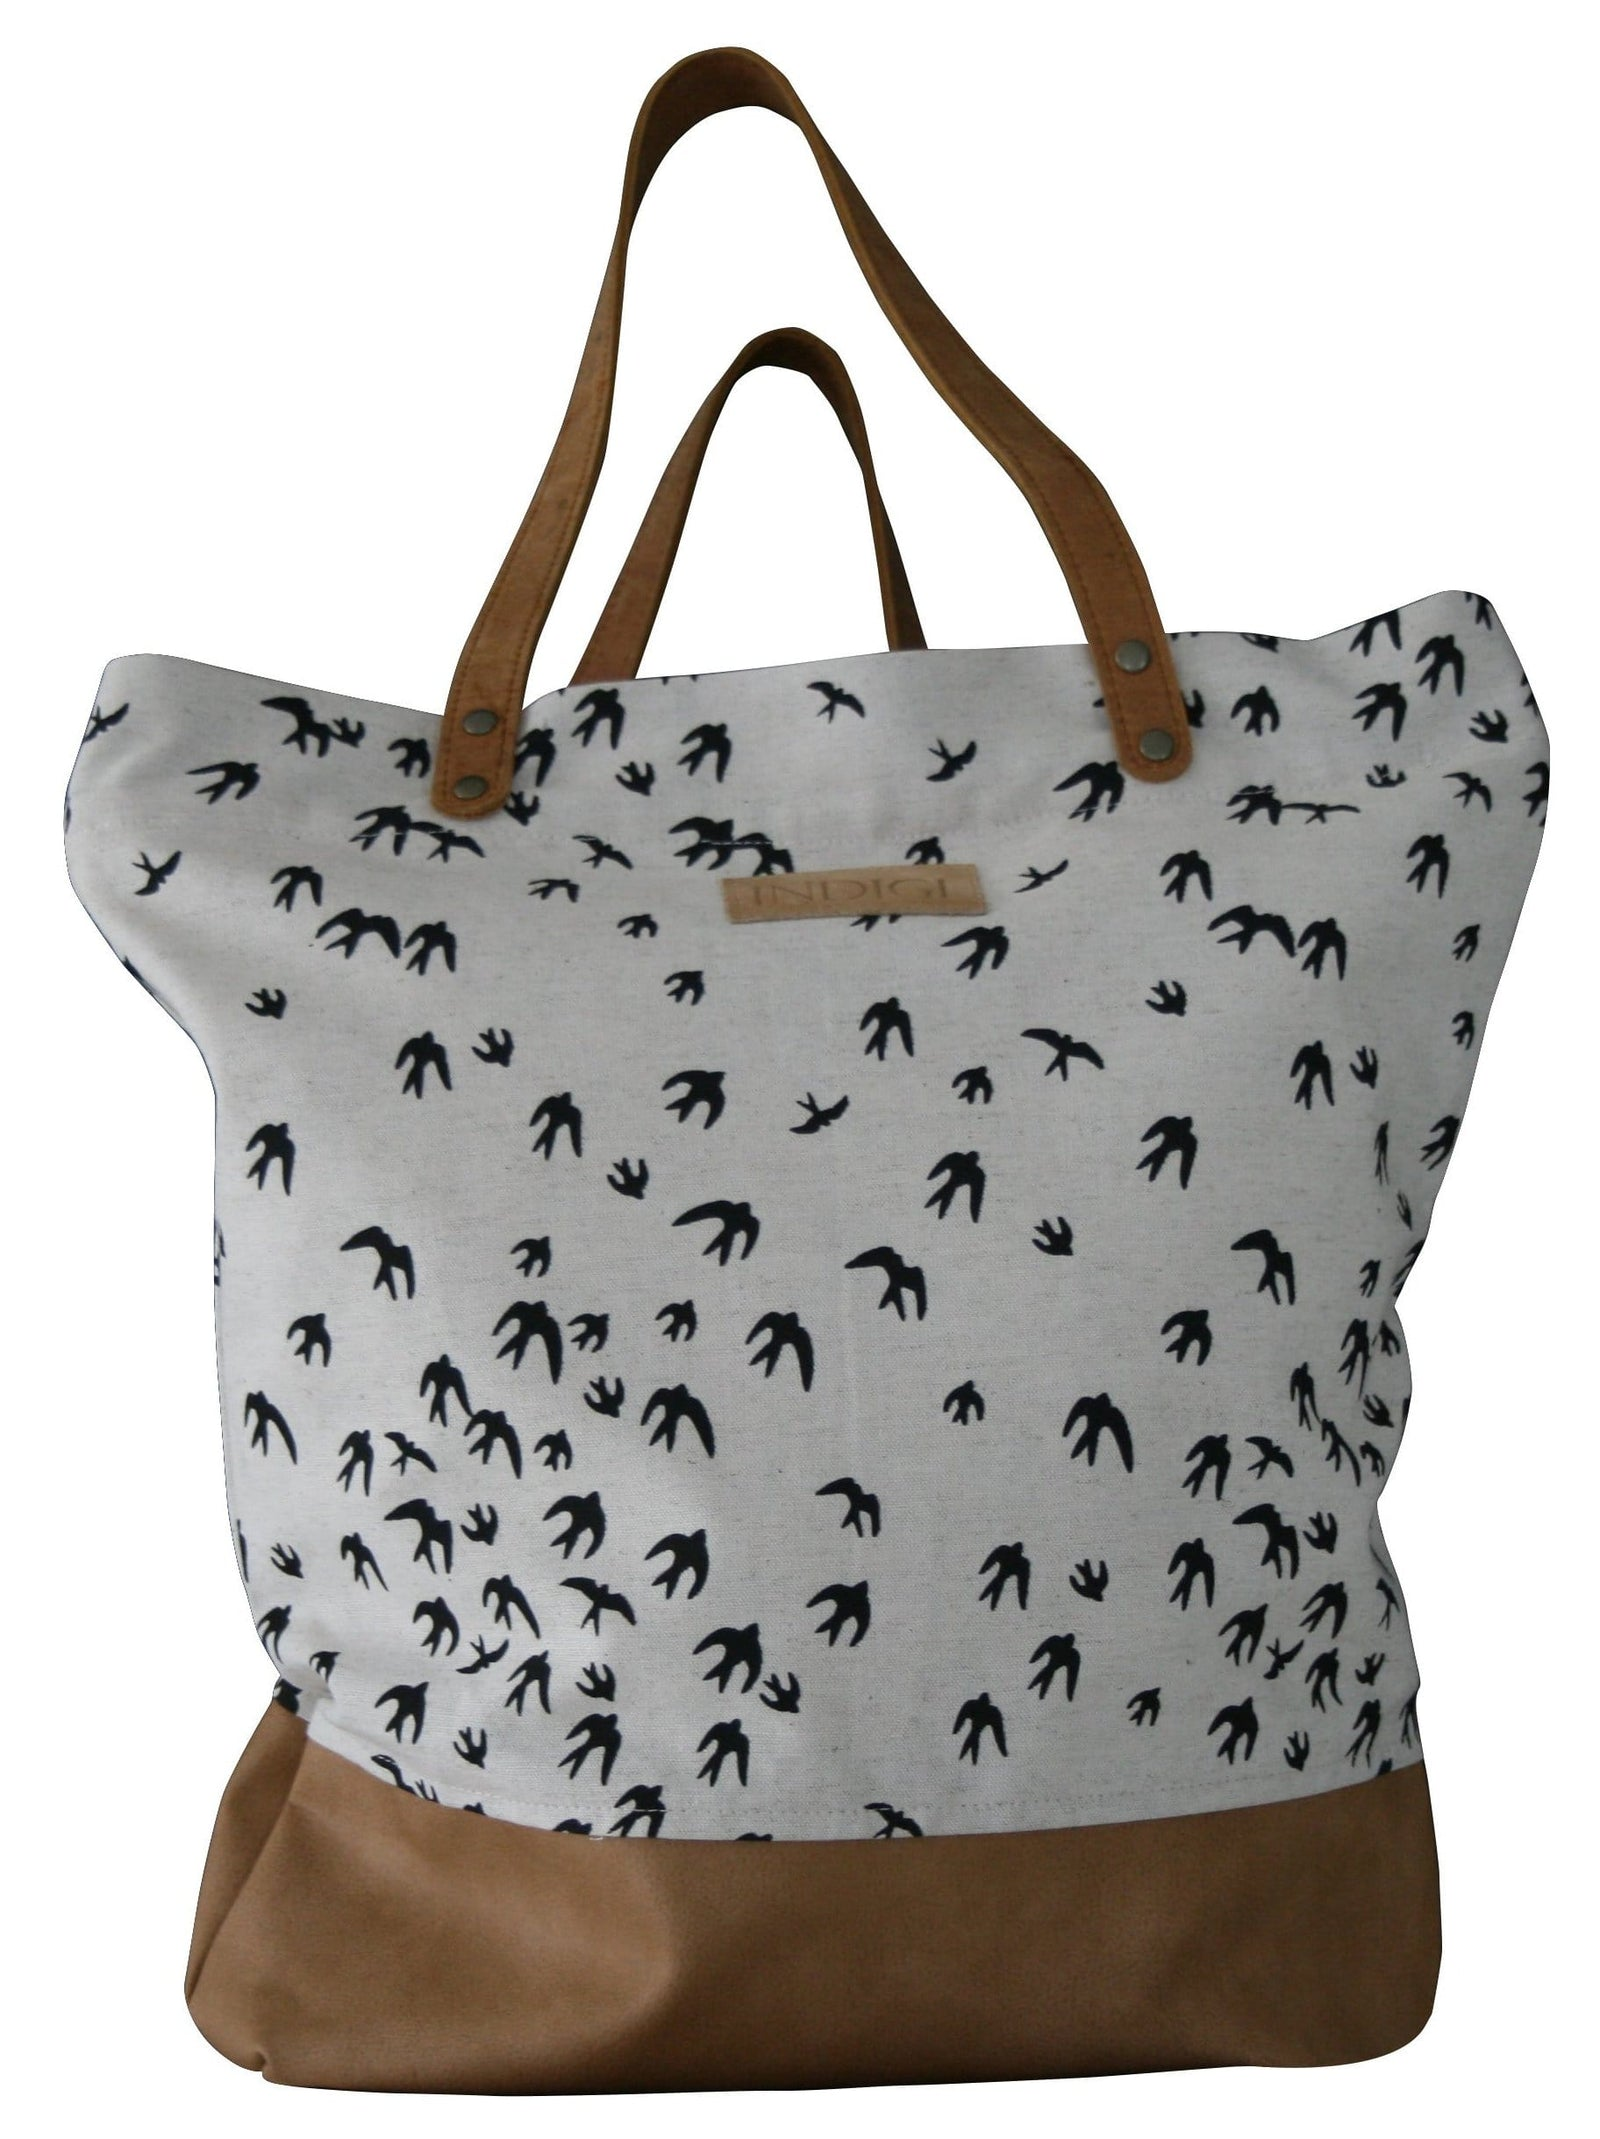 Birds Black Shoulder Bag Leather Base & Handles